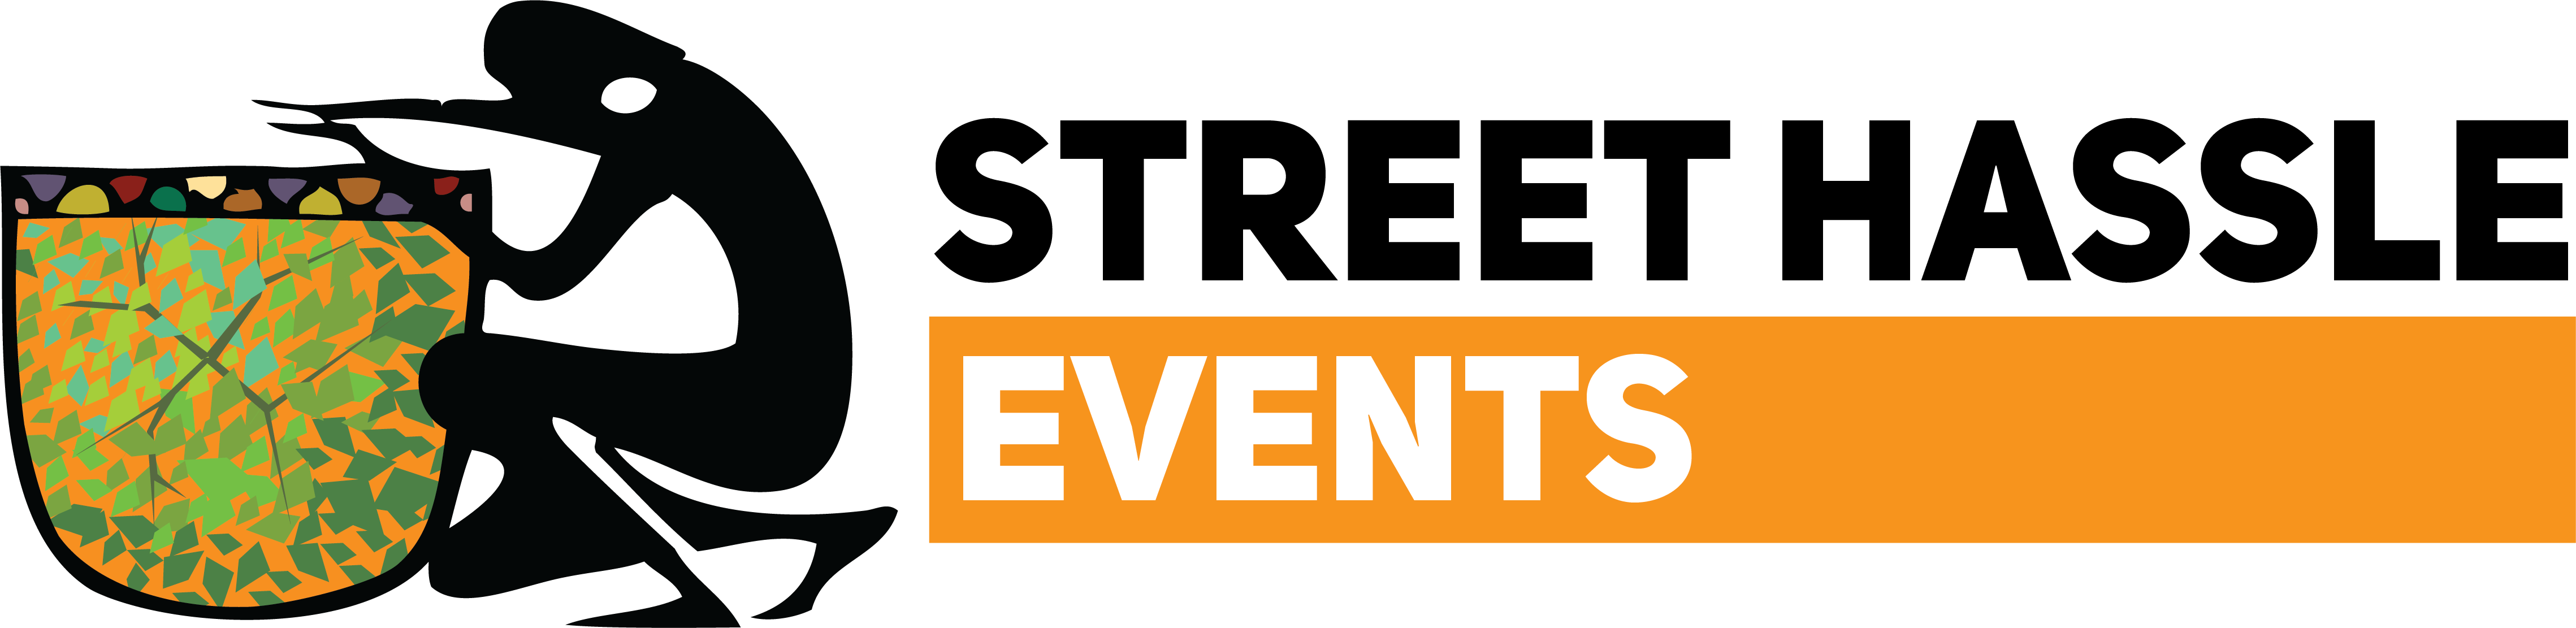 Street Hassle Events Logo